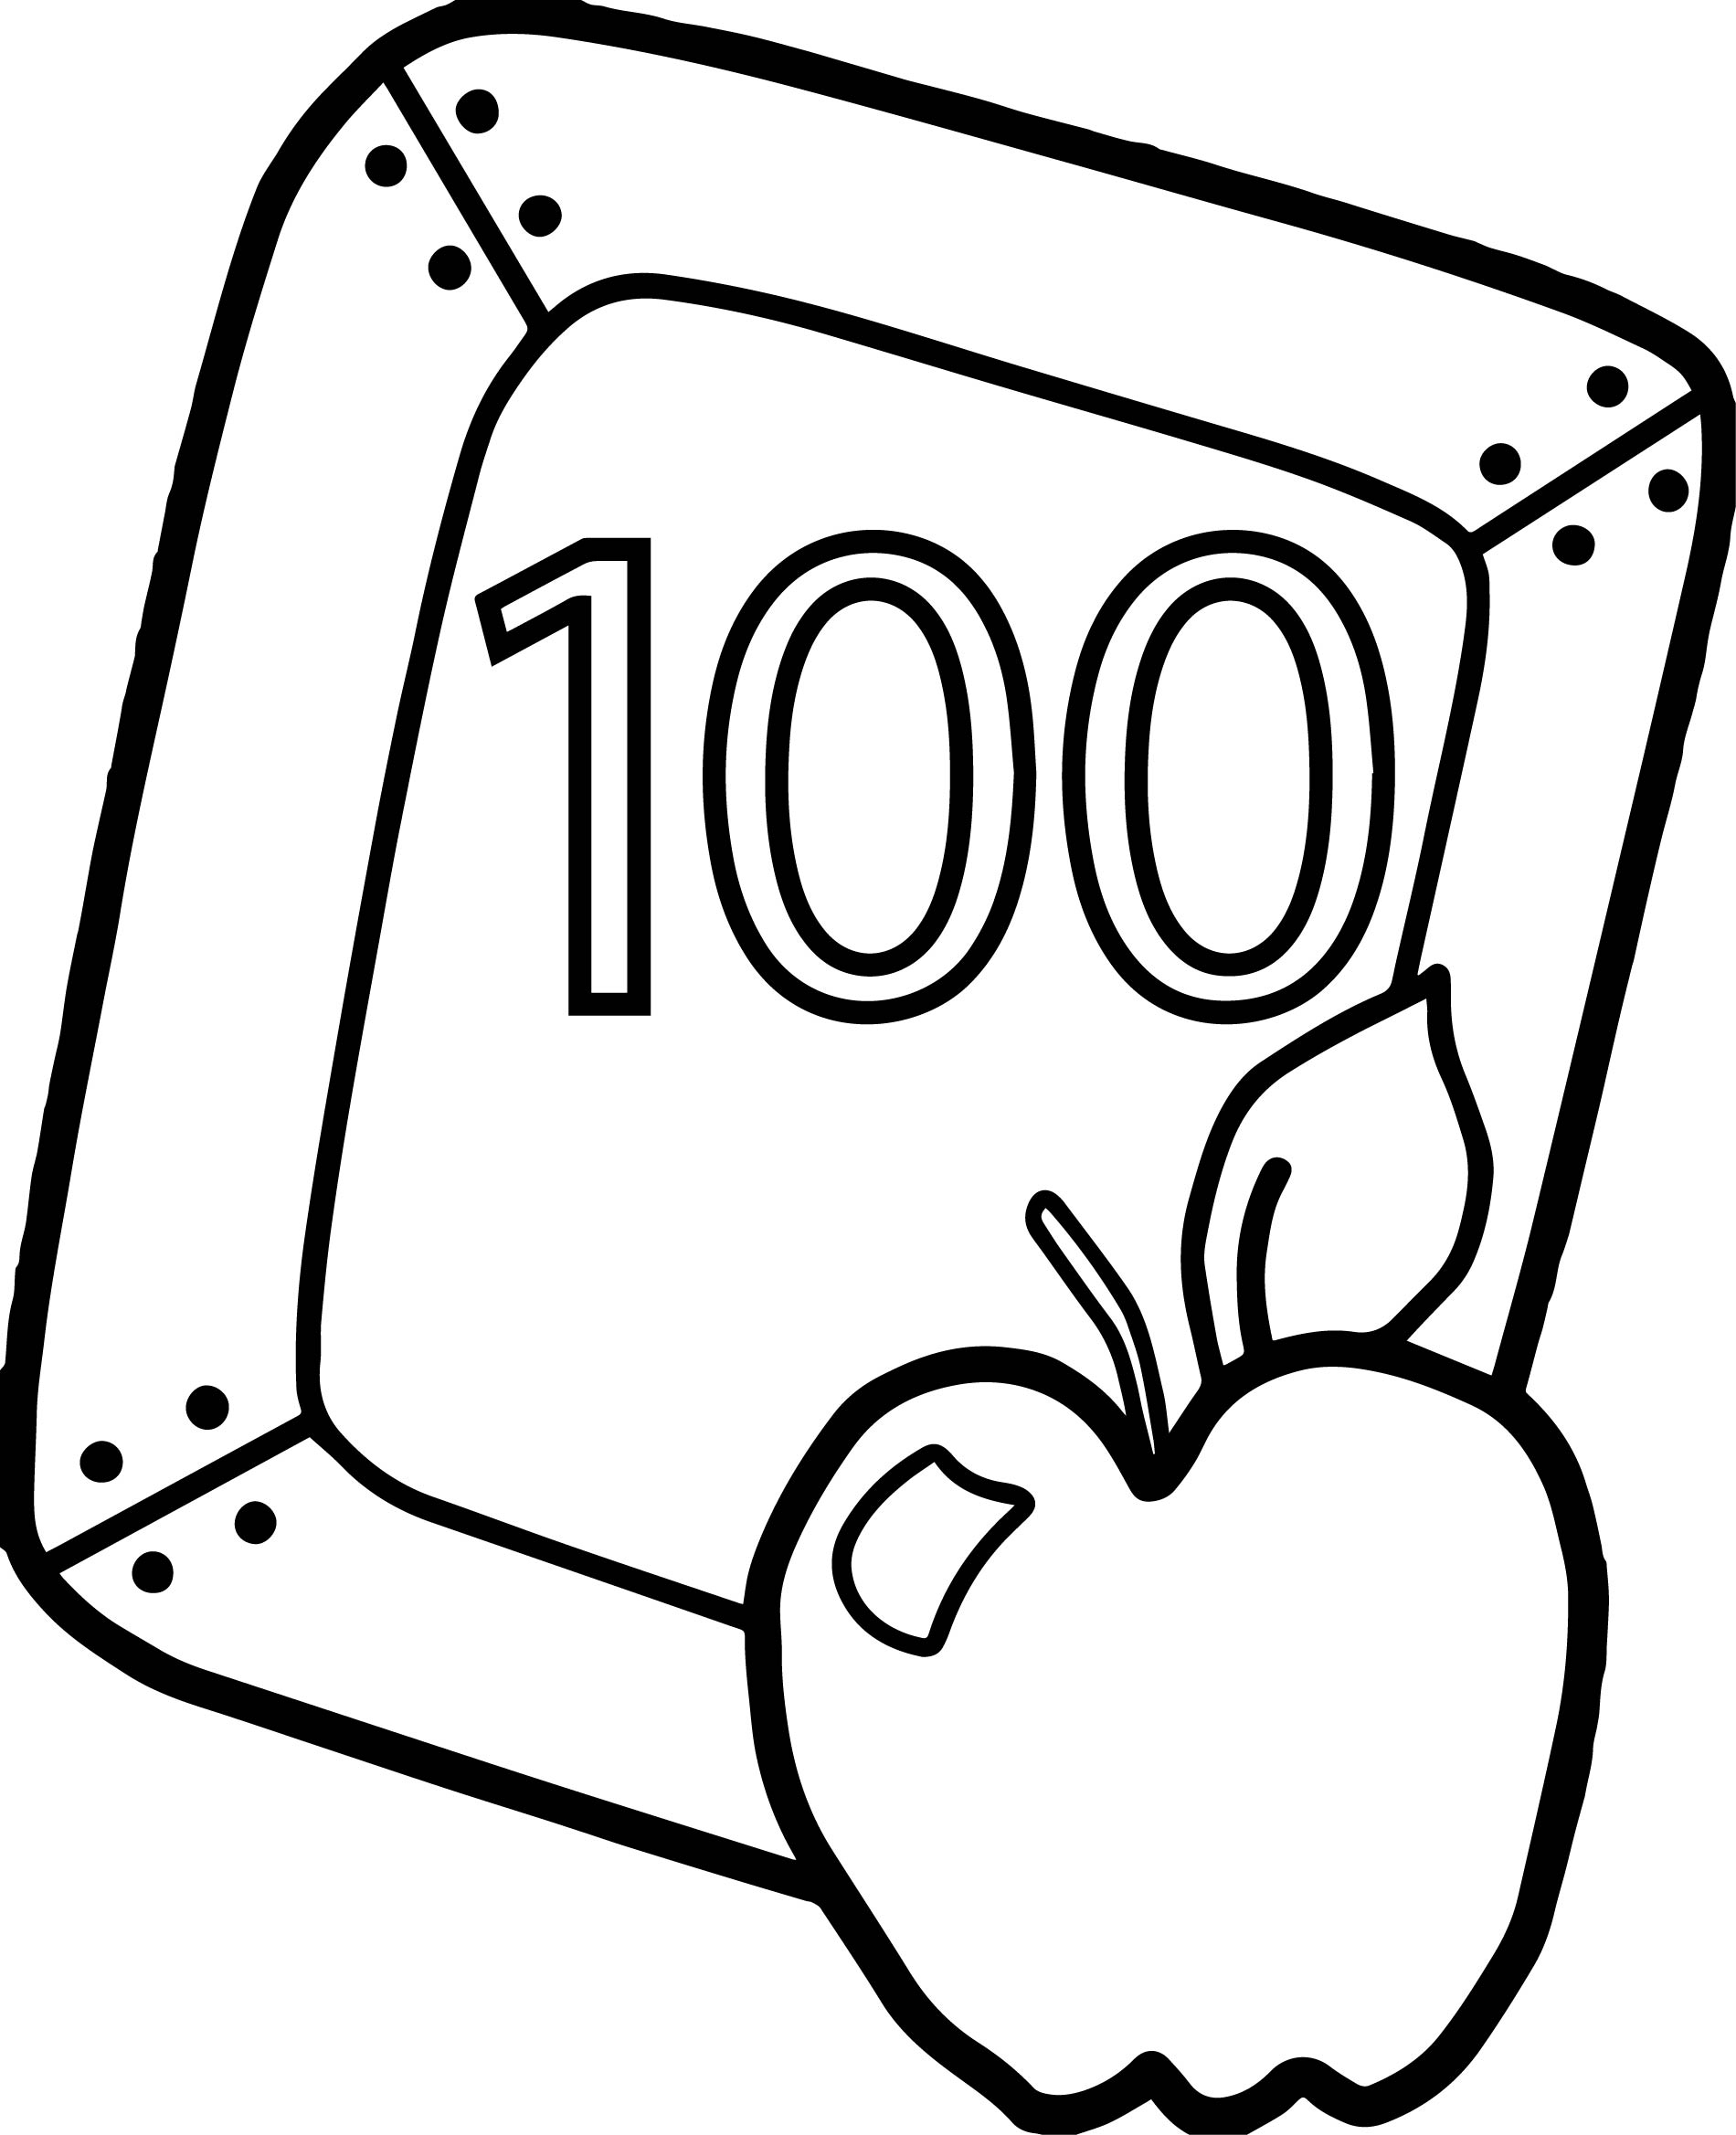 100th Day Of School Color By Number Sketch Coloring Page